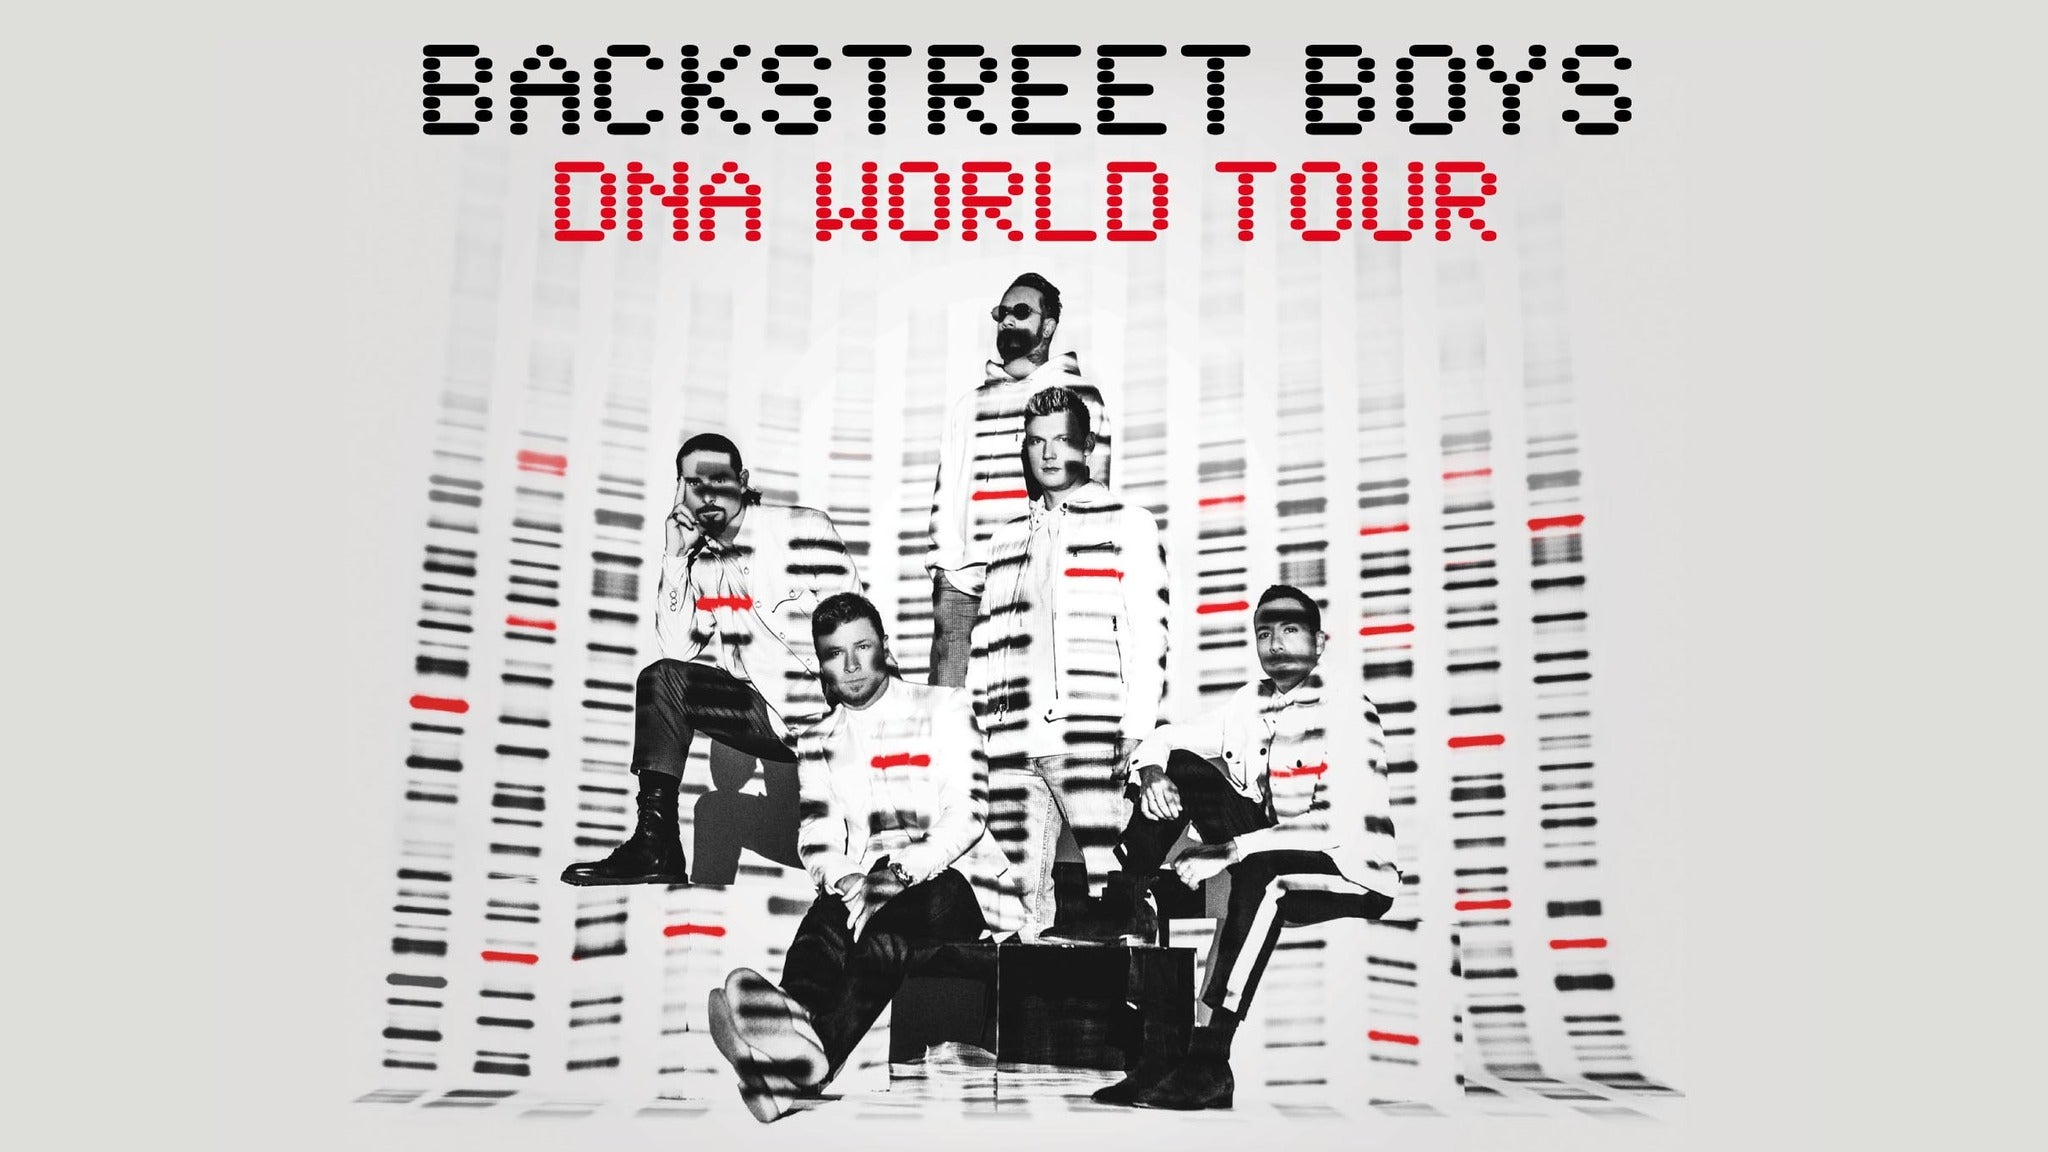 Backstreet Boys: DNA World Tour at XFINITY Theatre